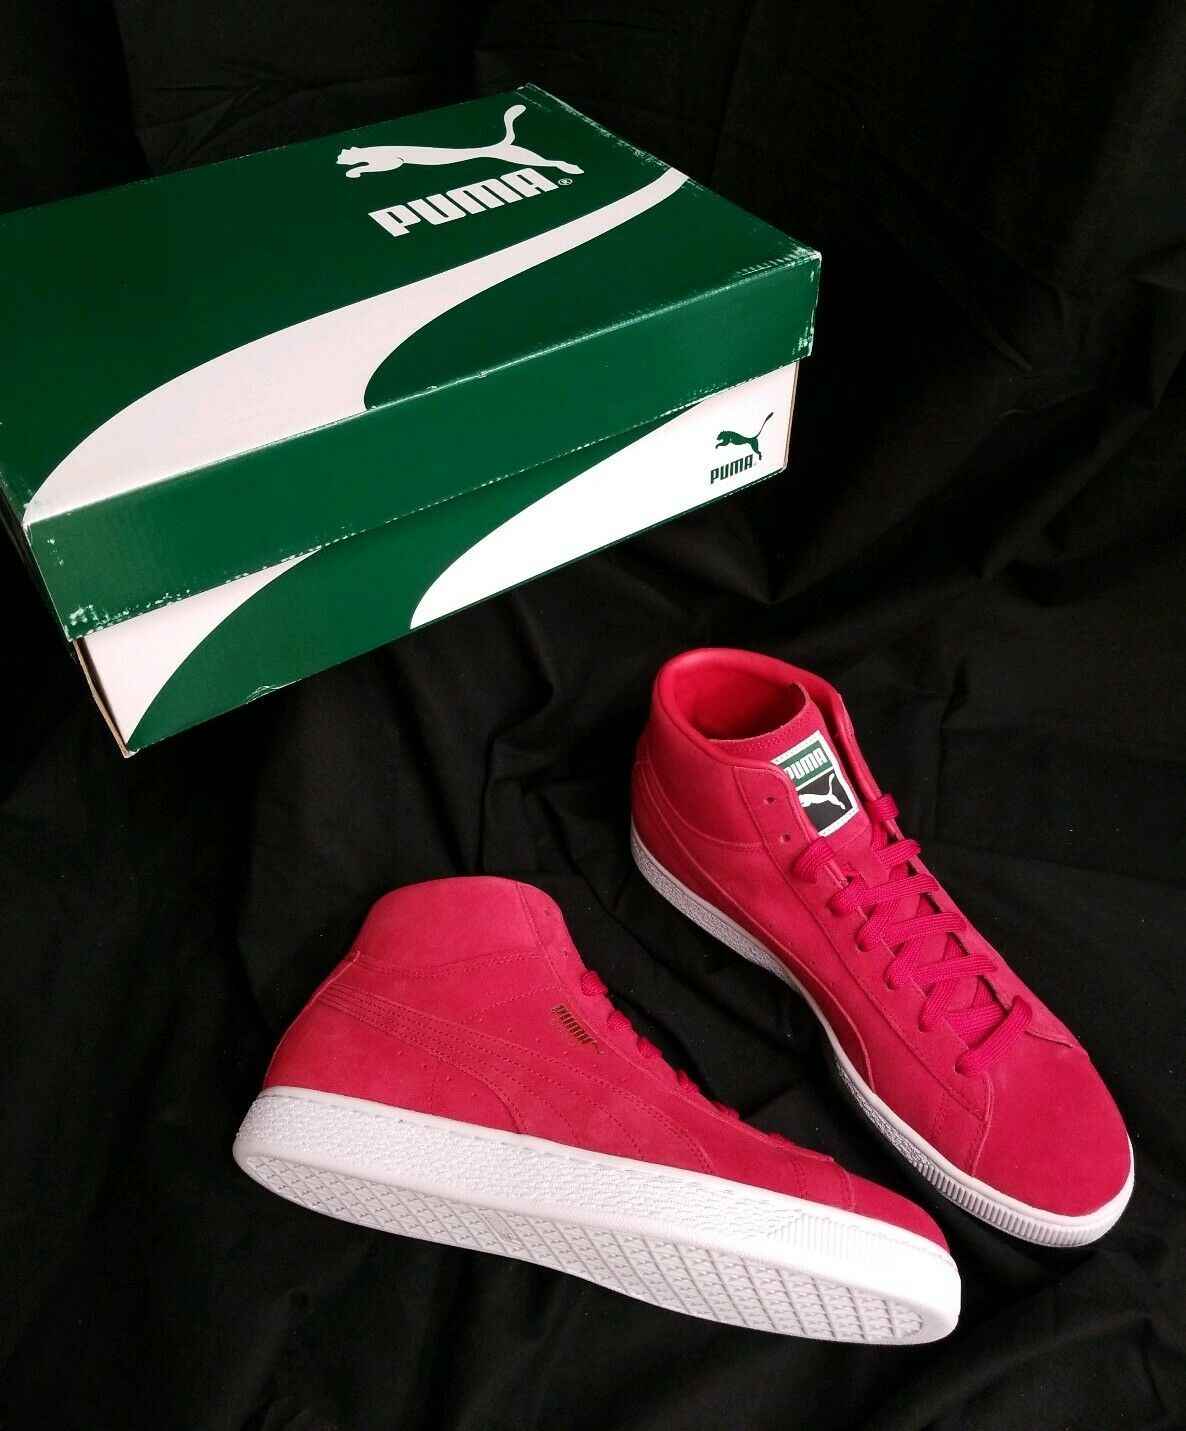 Puma Classic Mid Sneakers Mens 8.5 Red Suede Toreador High Top Lace shoes NWB